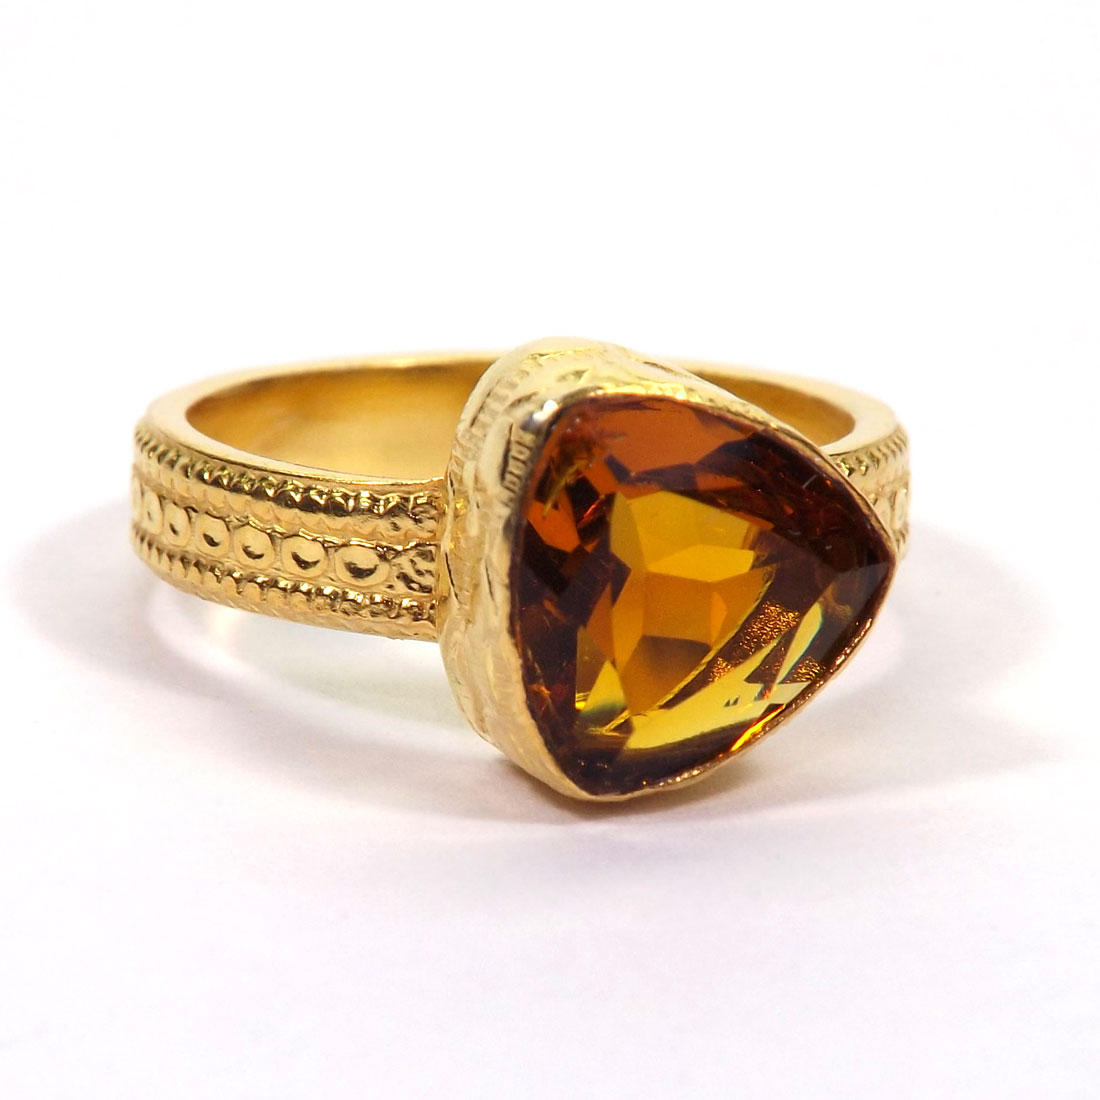 Gemstone Made in Brass Citrine Hydro Glass Ring O - HBR999 Gemstone Made in Brass Citrine Hydro Glass Ring